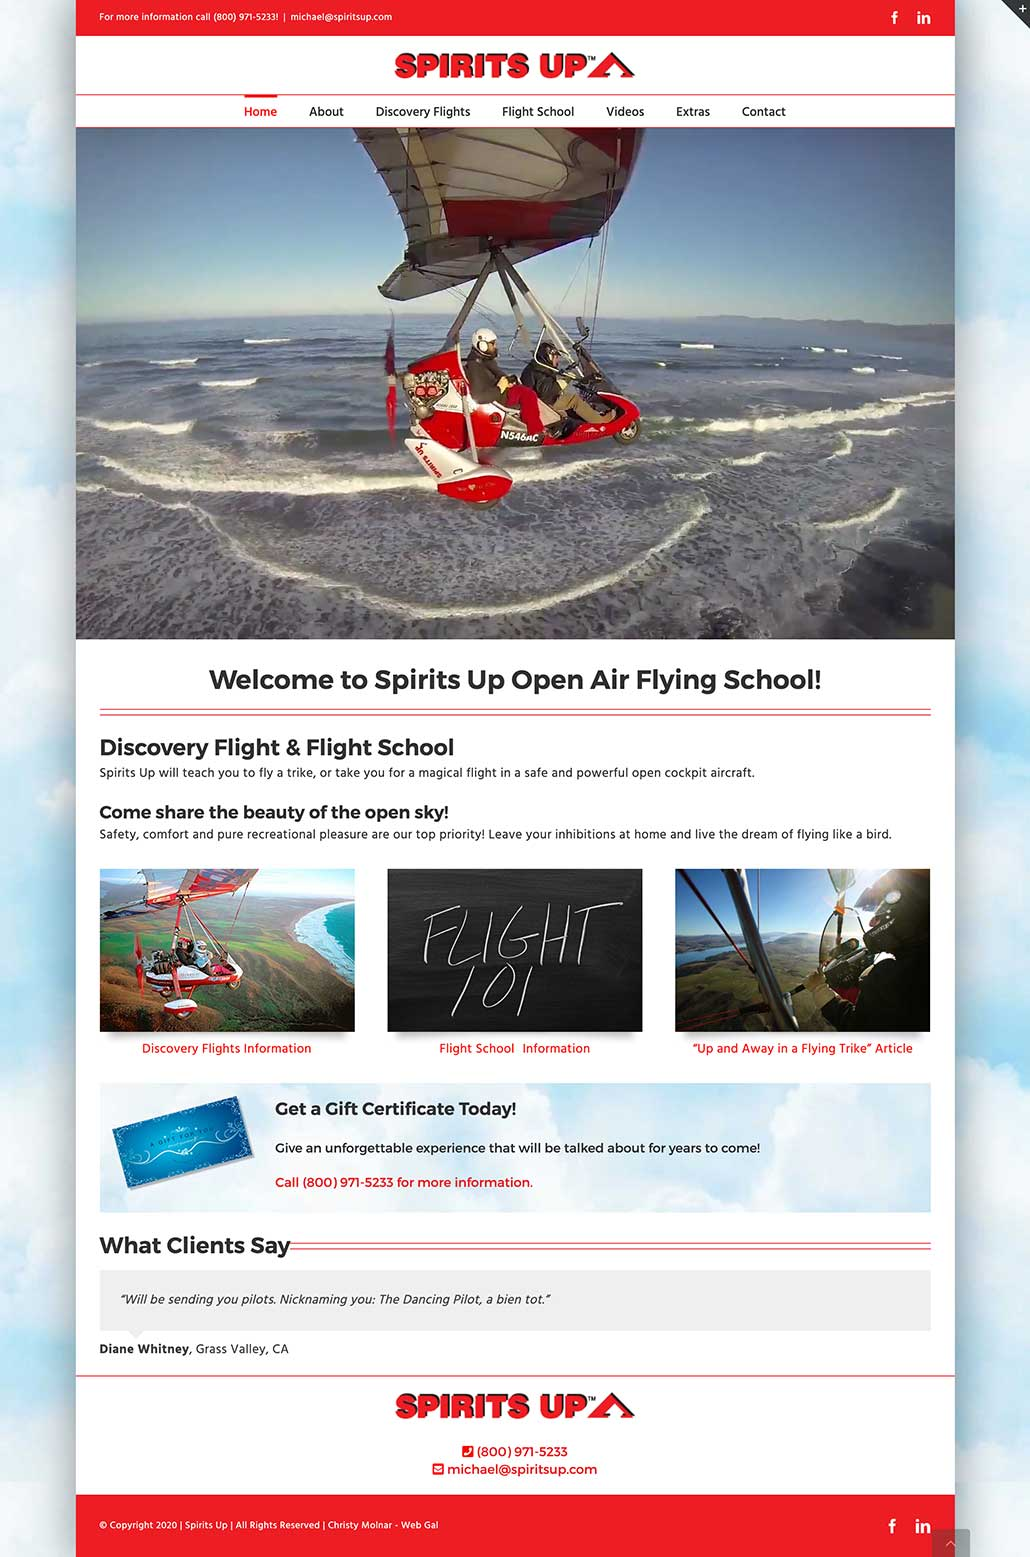 Welcome to Spirits Up Open Air Flying School